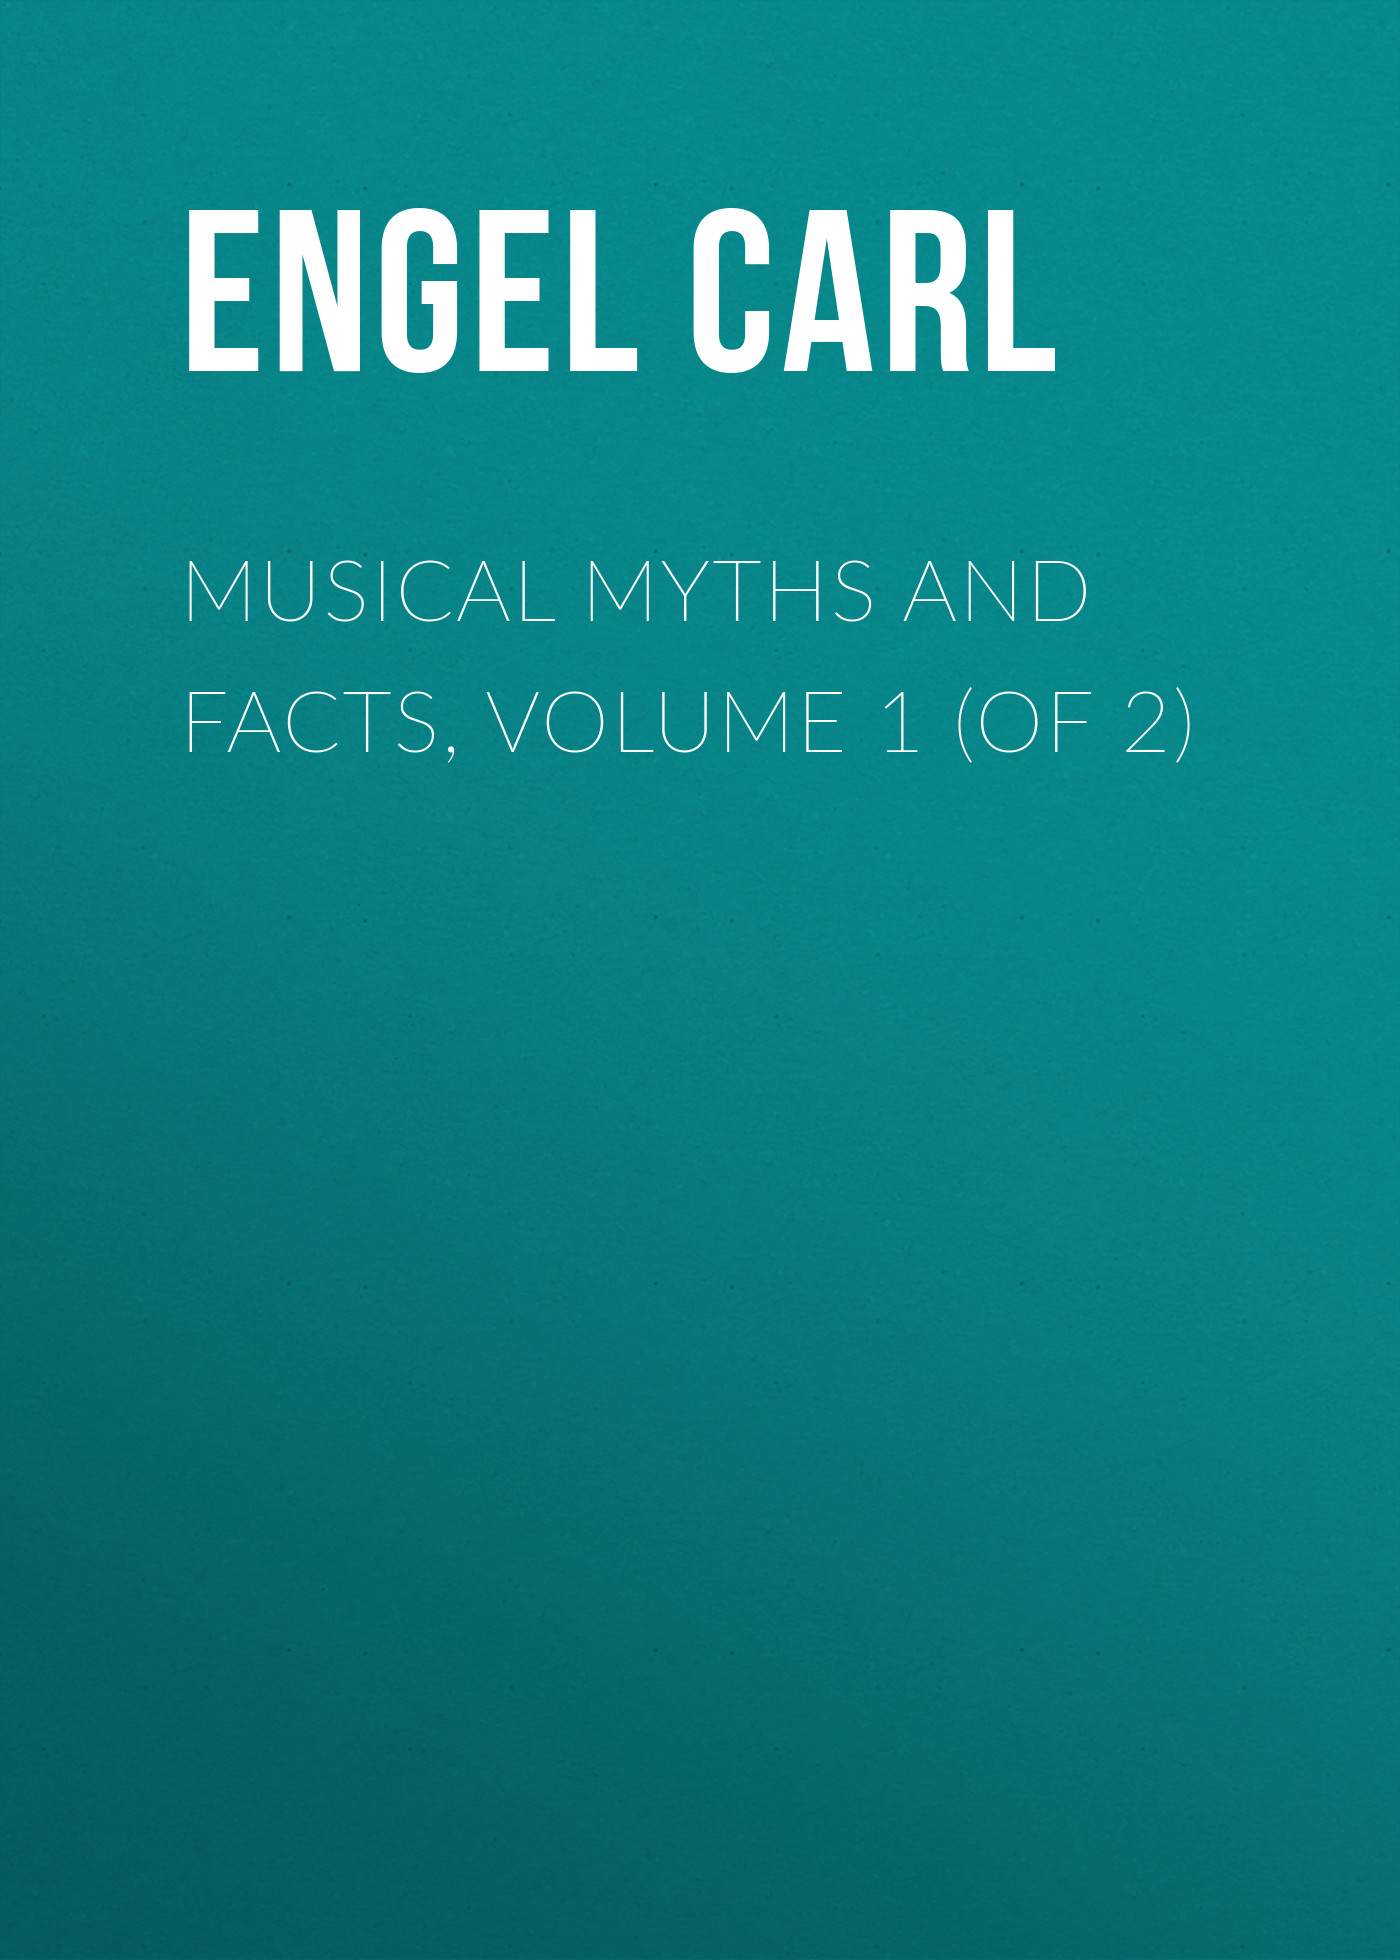 Engel Carl Musical Myths and Facts, Volume 1 (of 2) 408239821001 brand new throttle body 9640796280 408 239 821 001 egast02 for fiat fiorino qubo